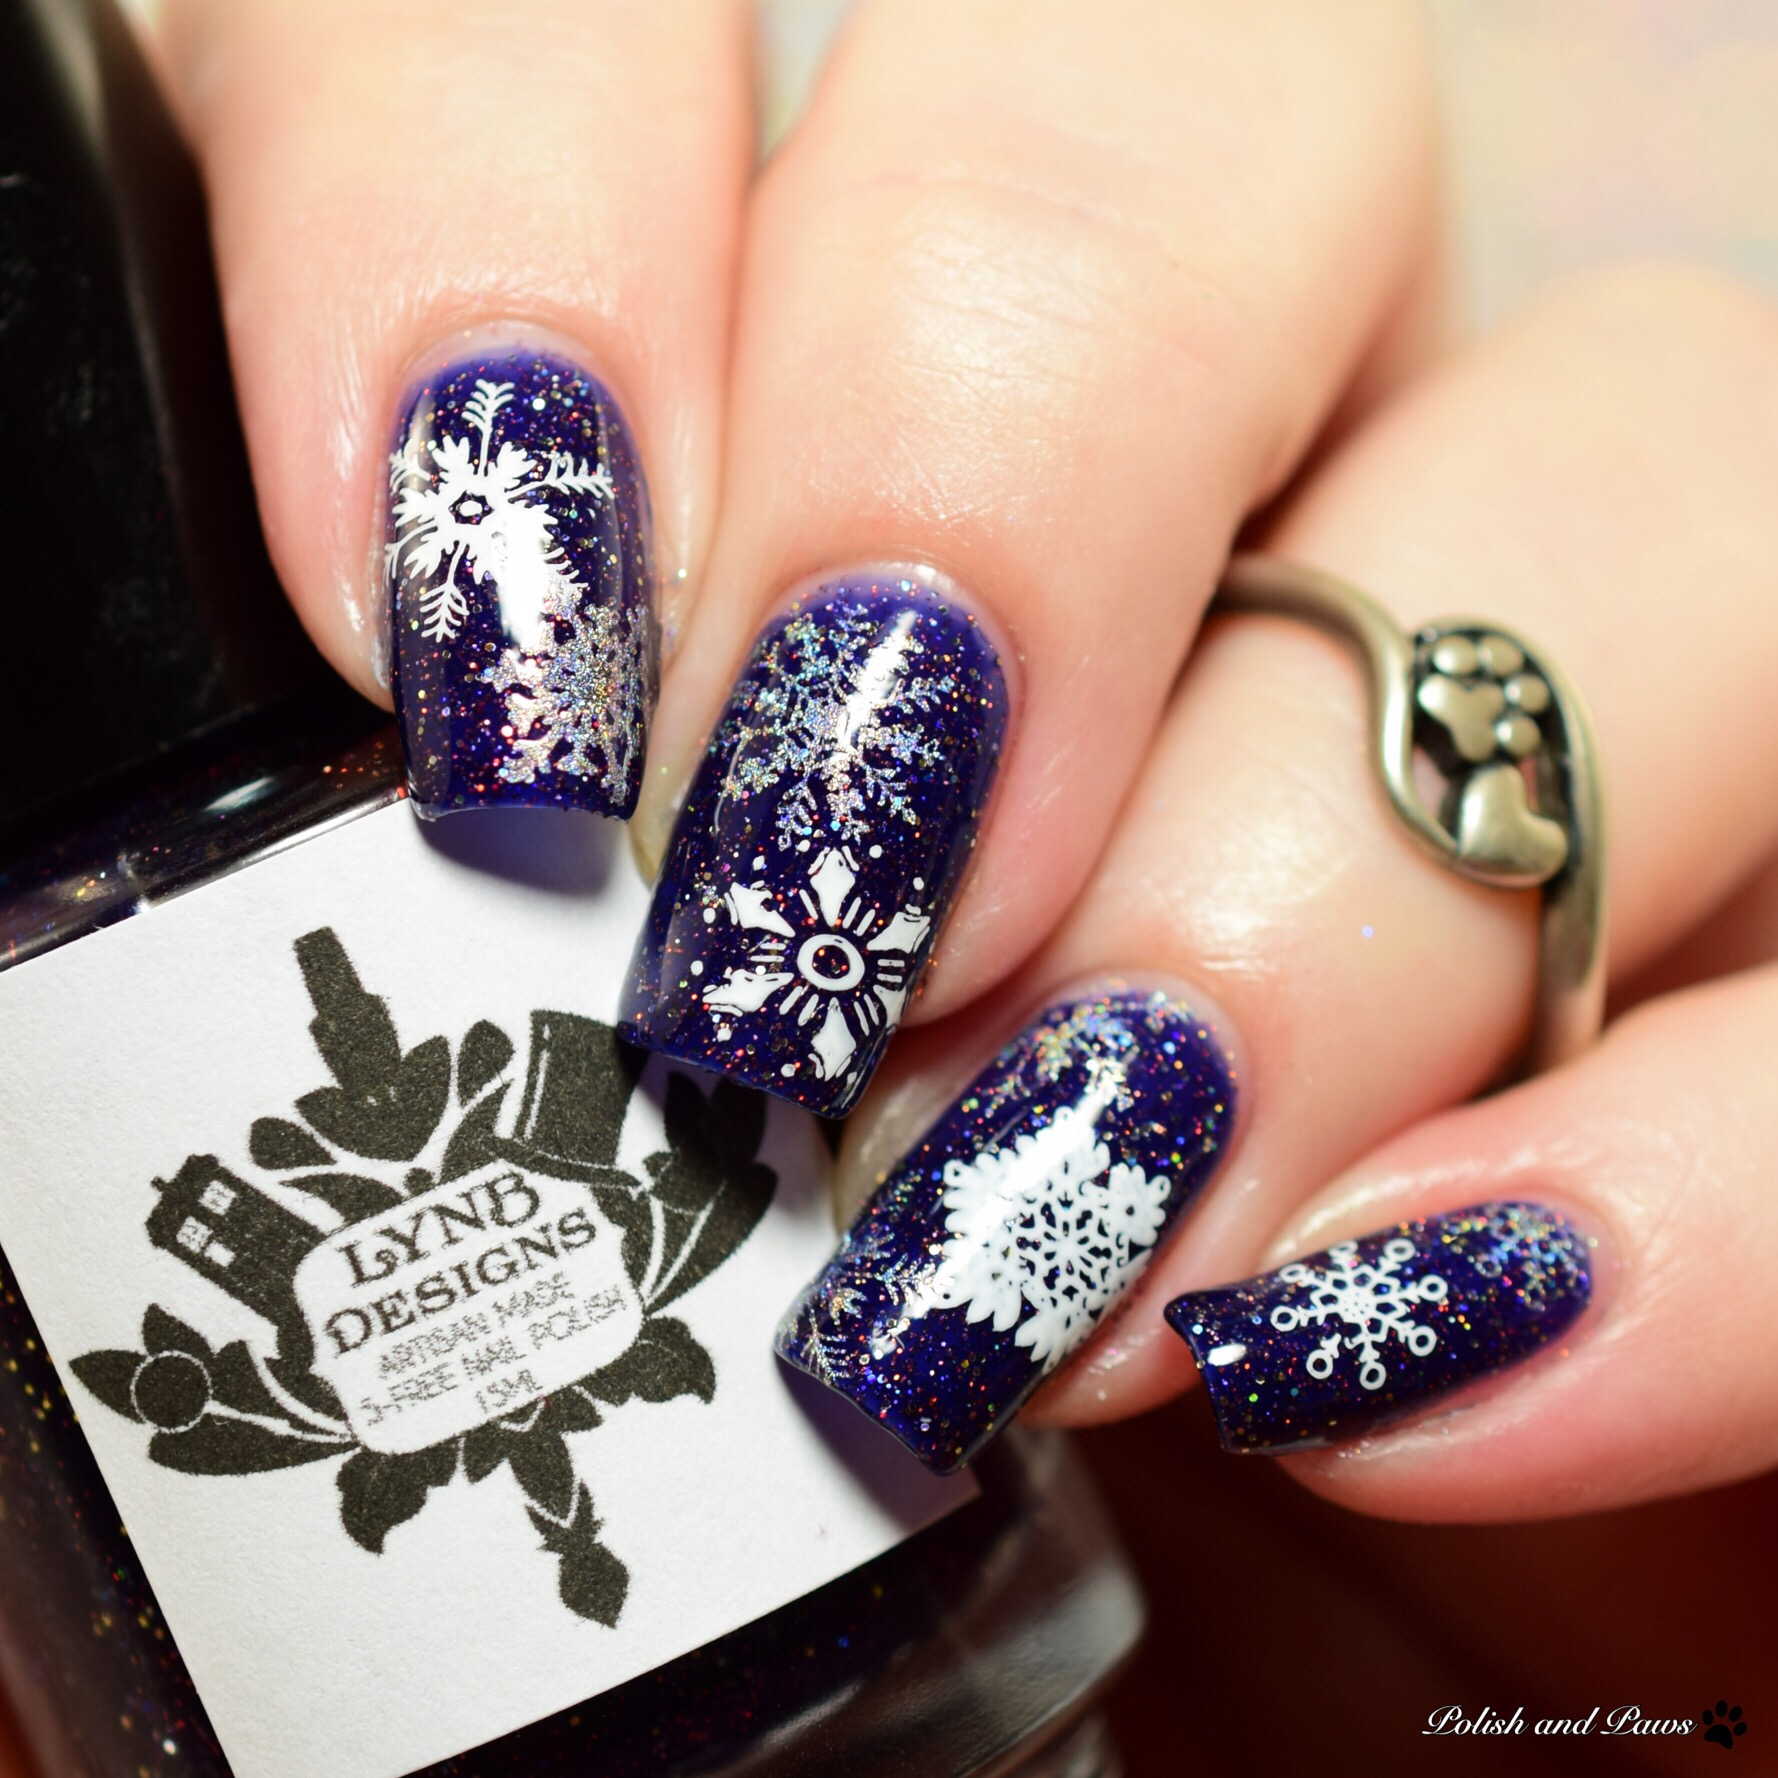 LynB Designs Simply Meant to Be nail art